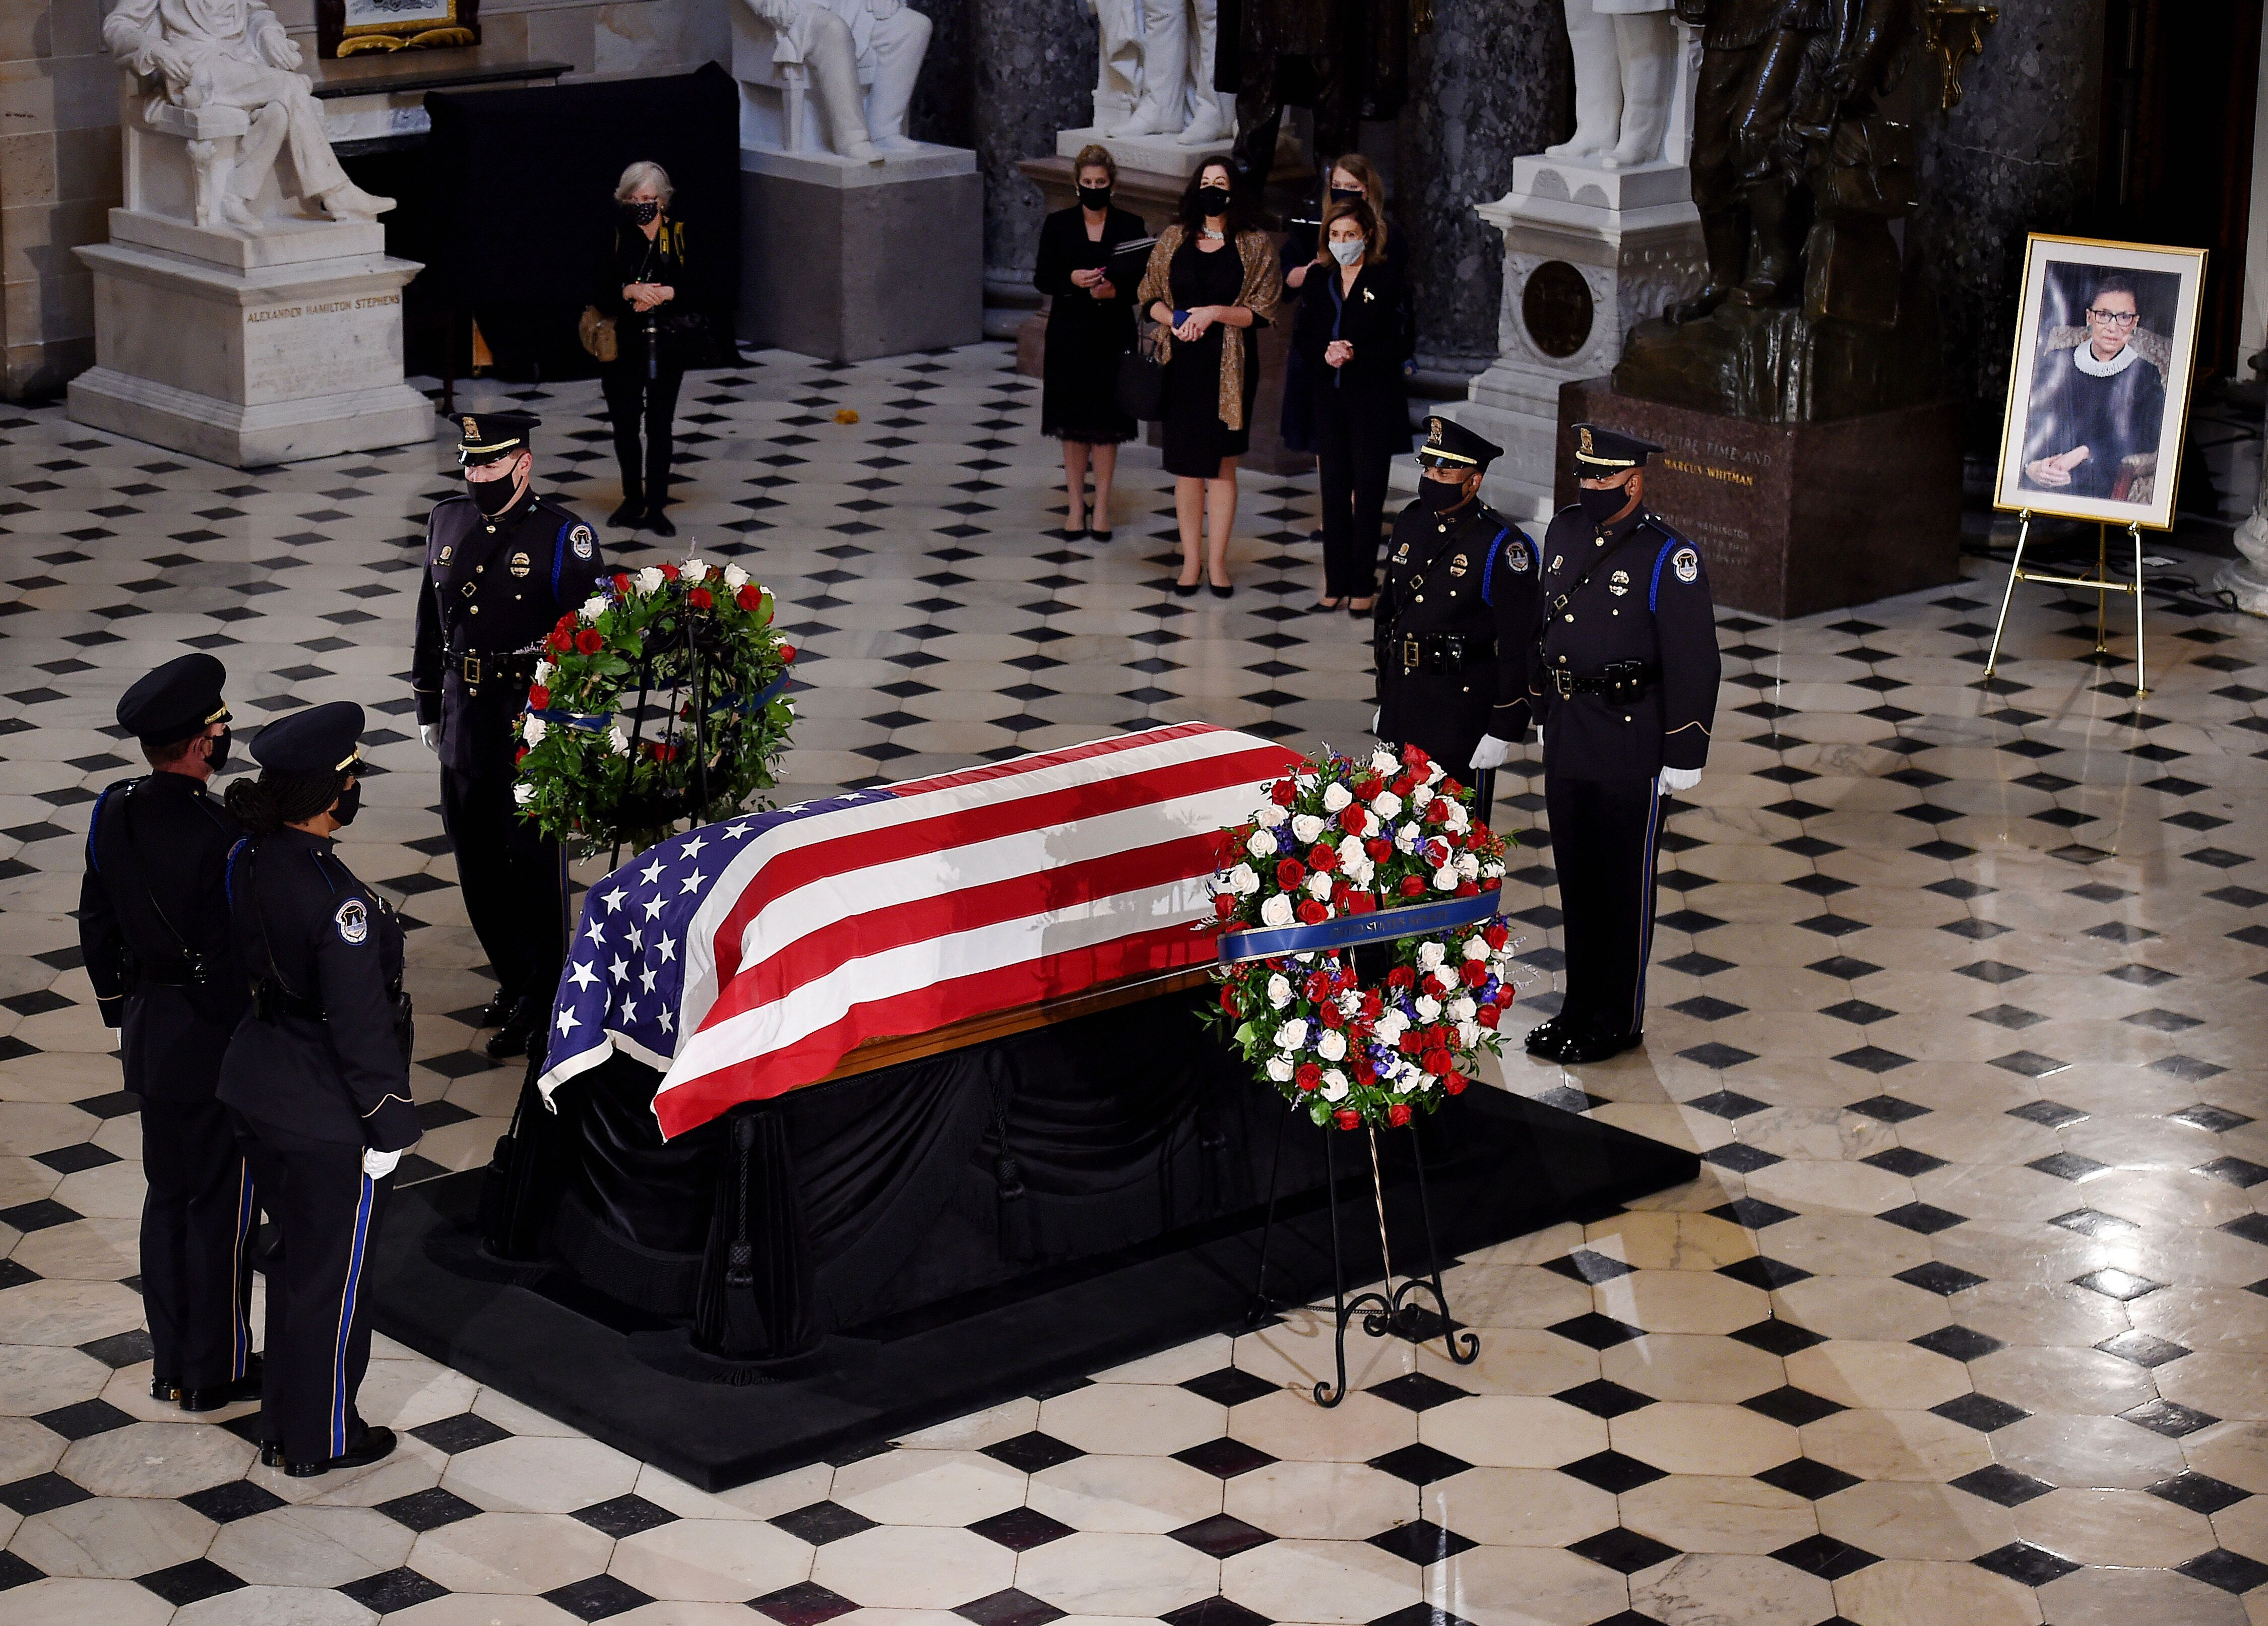 Ruth Bader Ginsburg's Trainer Does Pushups By Her Casket In Moving Tribute